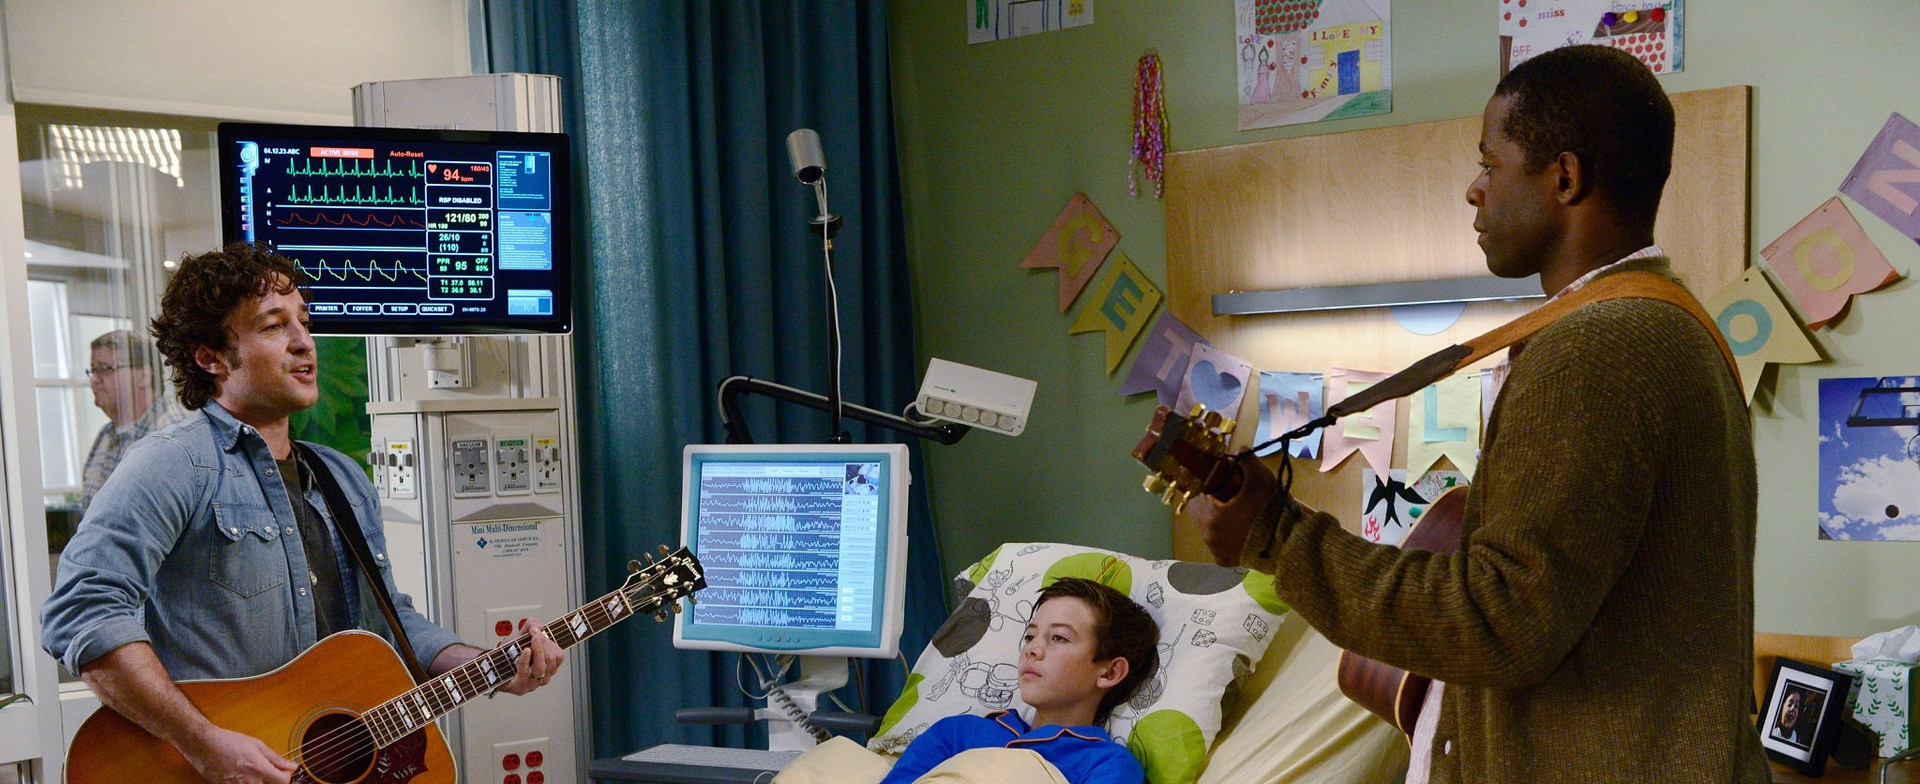 """Thomas Nicholas, Griffin Gluck and Adrian Lester in """"Red Band Society"""""""